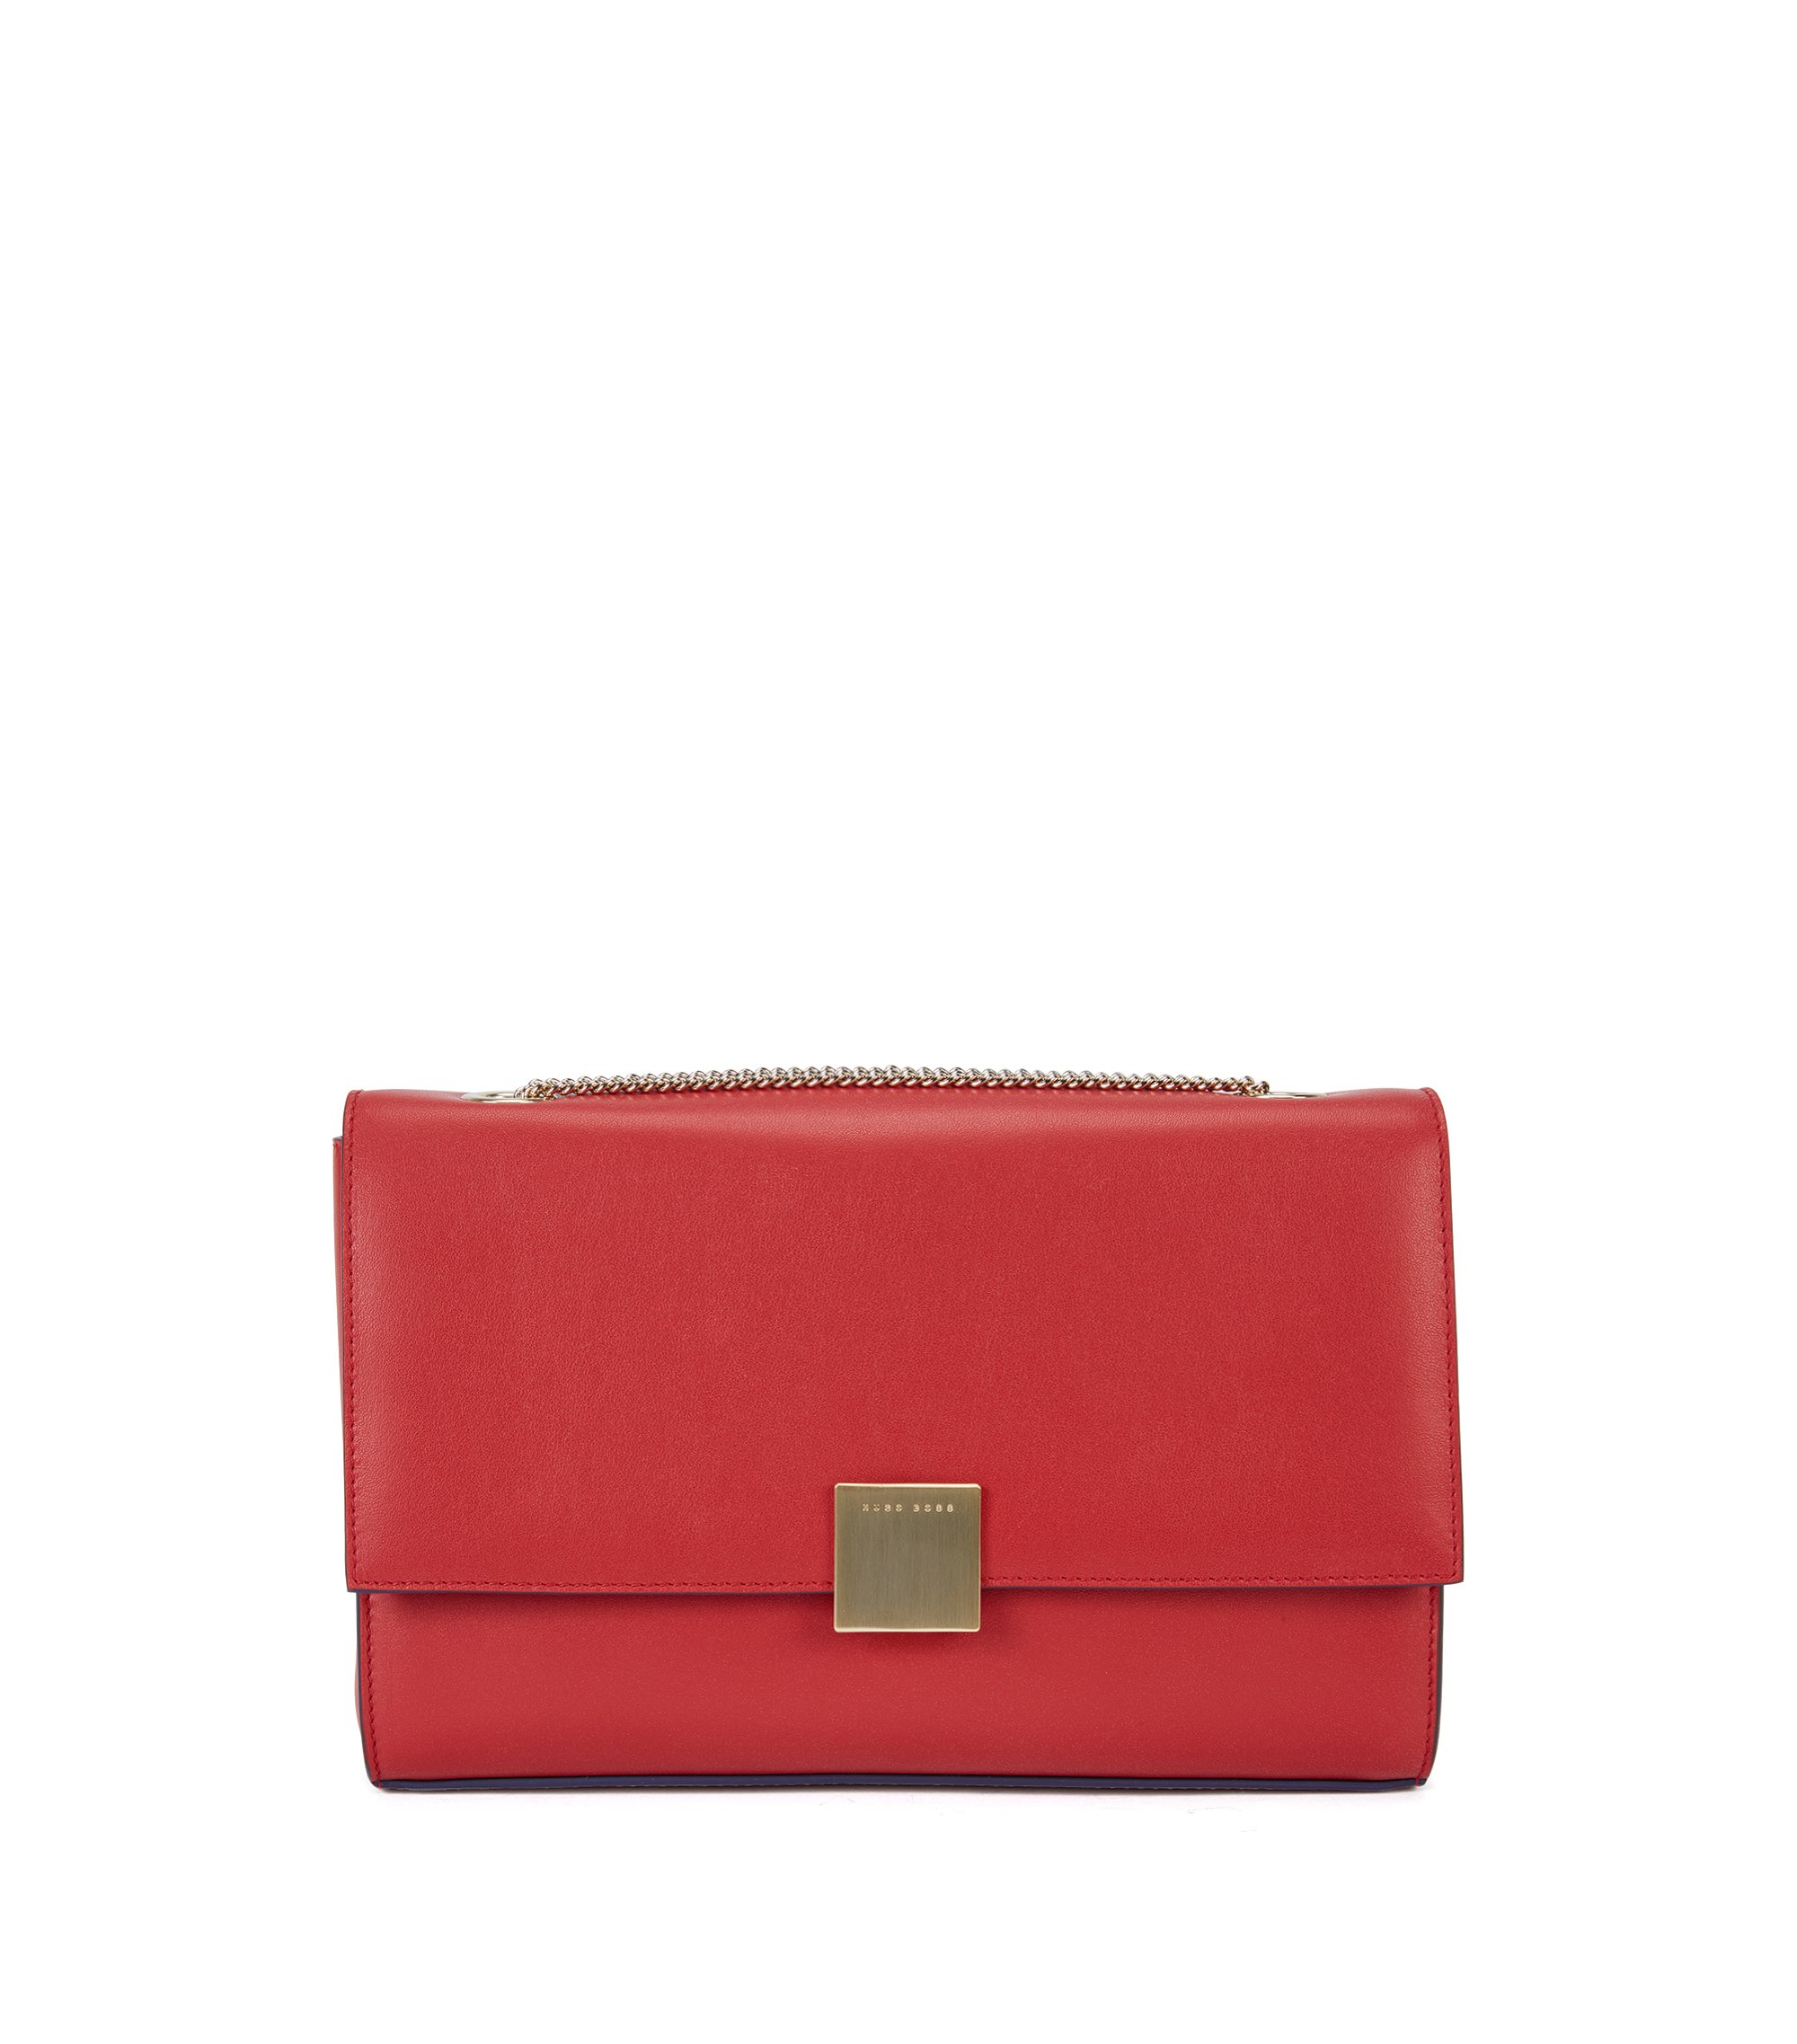 Italian Calfskin Handbag | Munich Flap N, Red